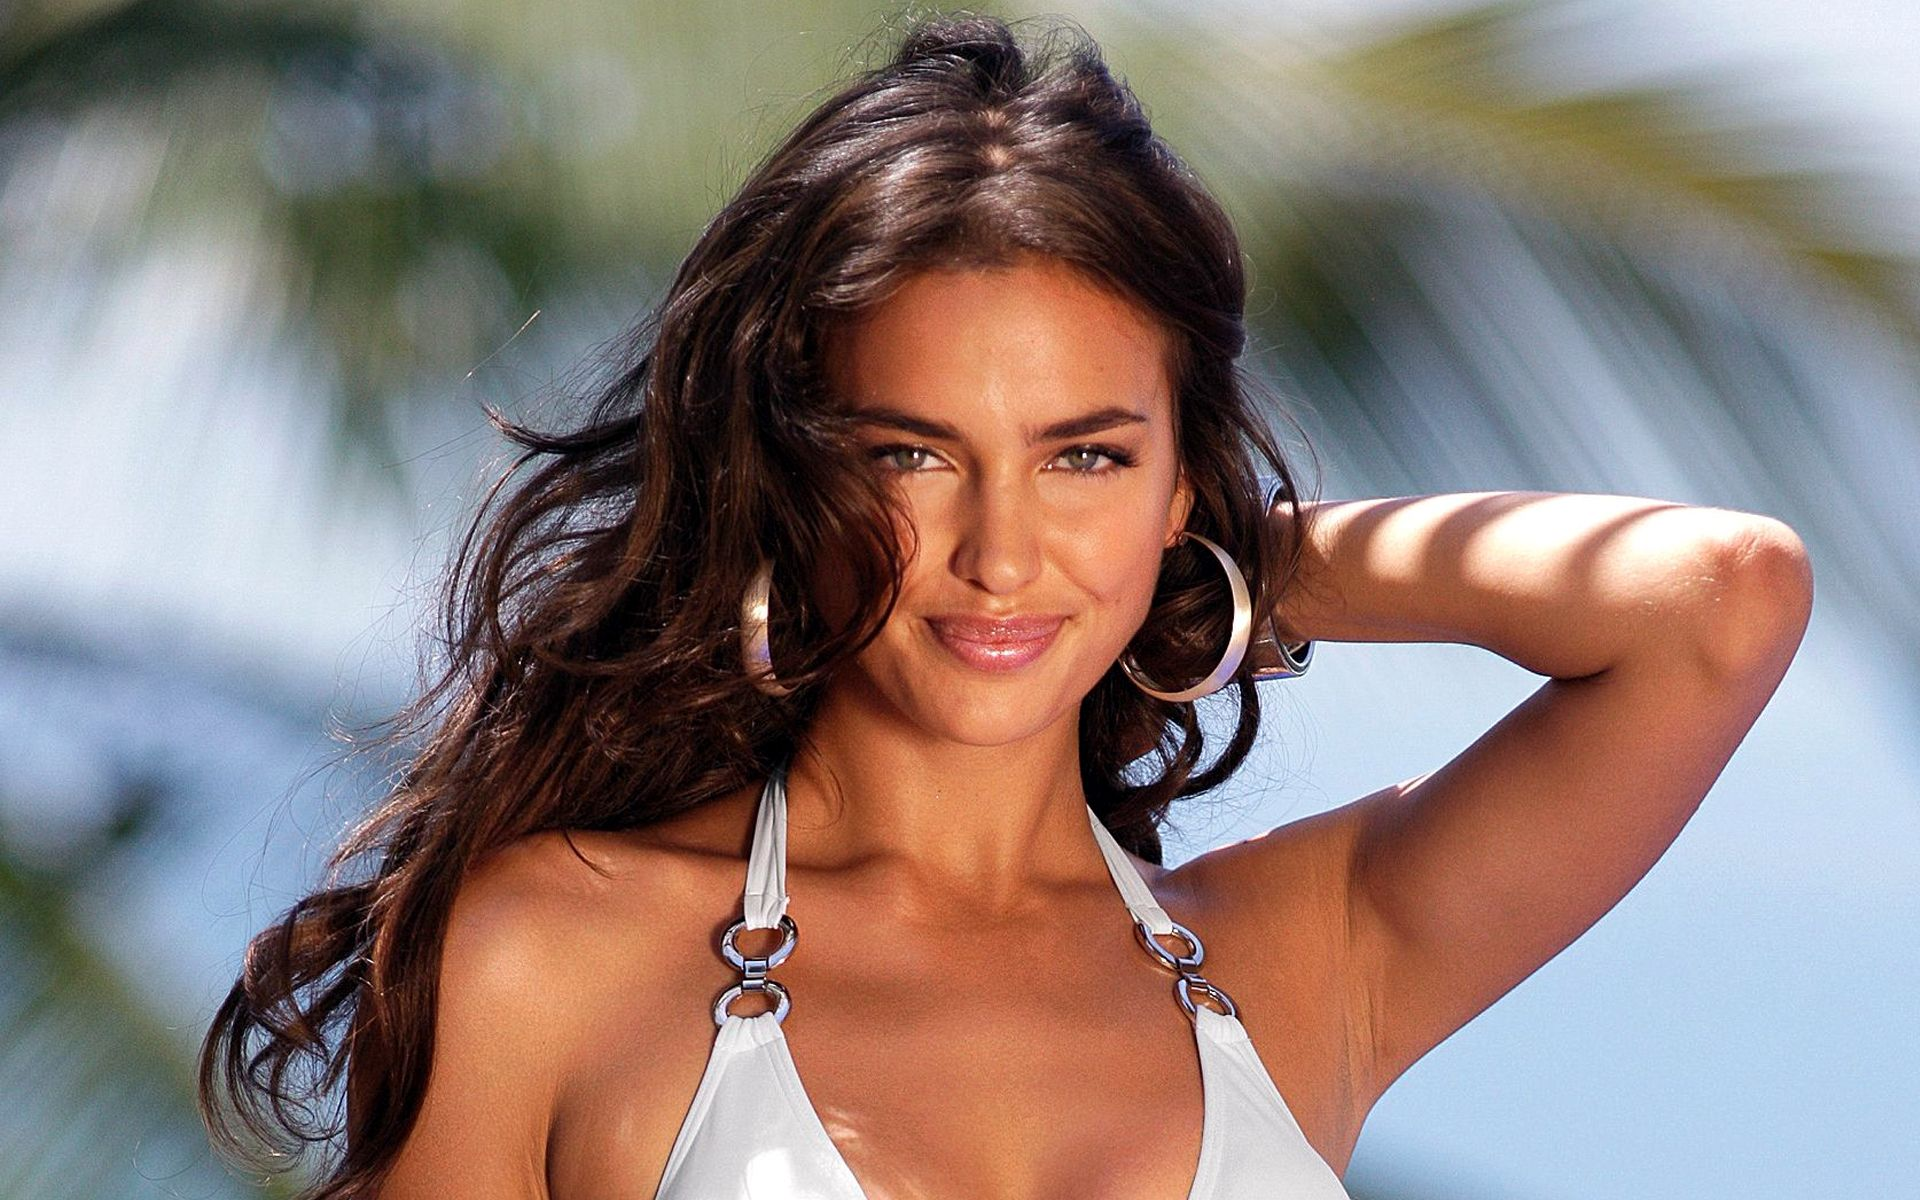 Irina Shayk Shows Off Her Body For XTI Shoes Campaign Irina